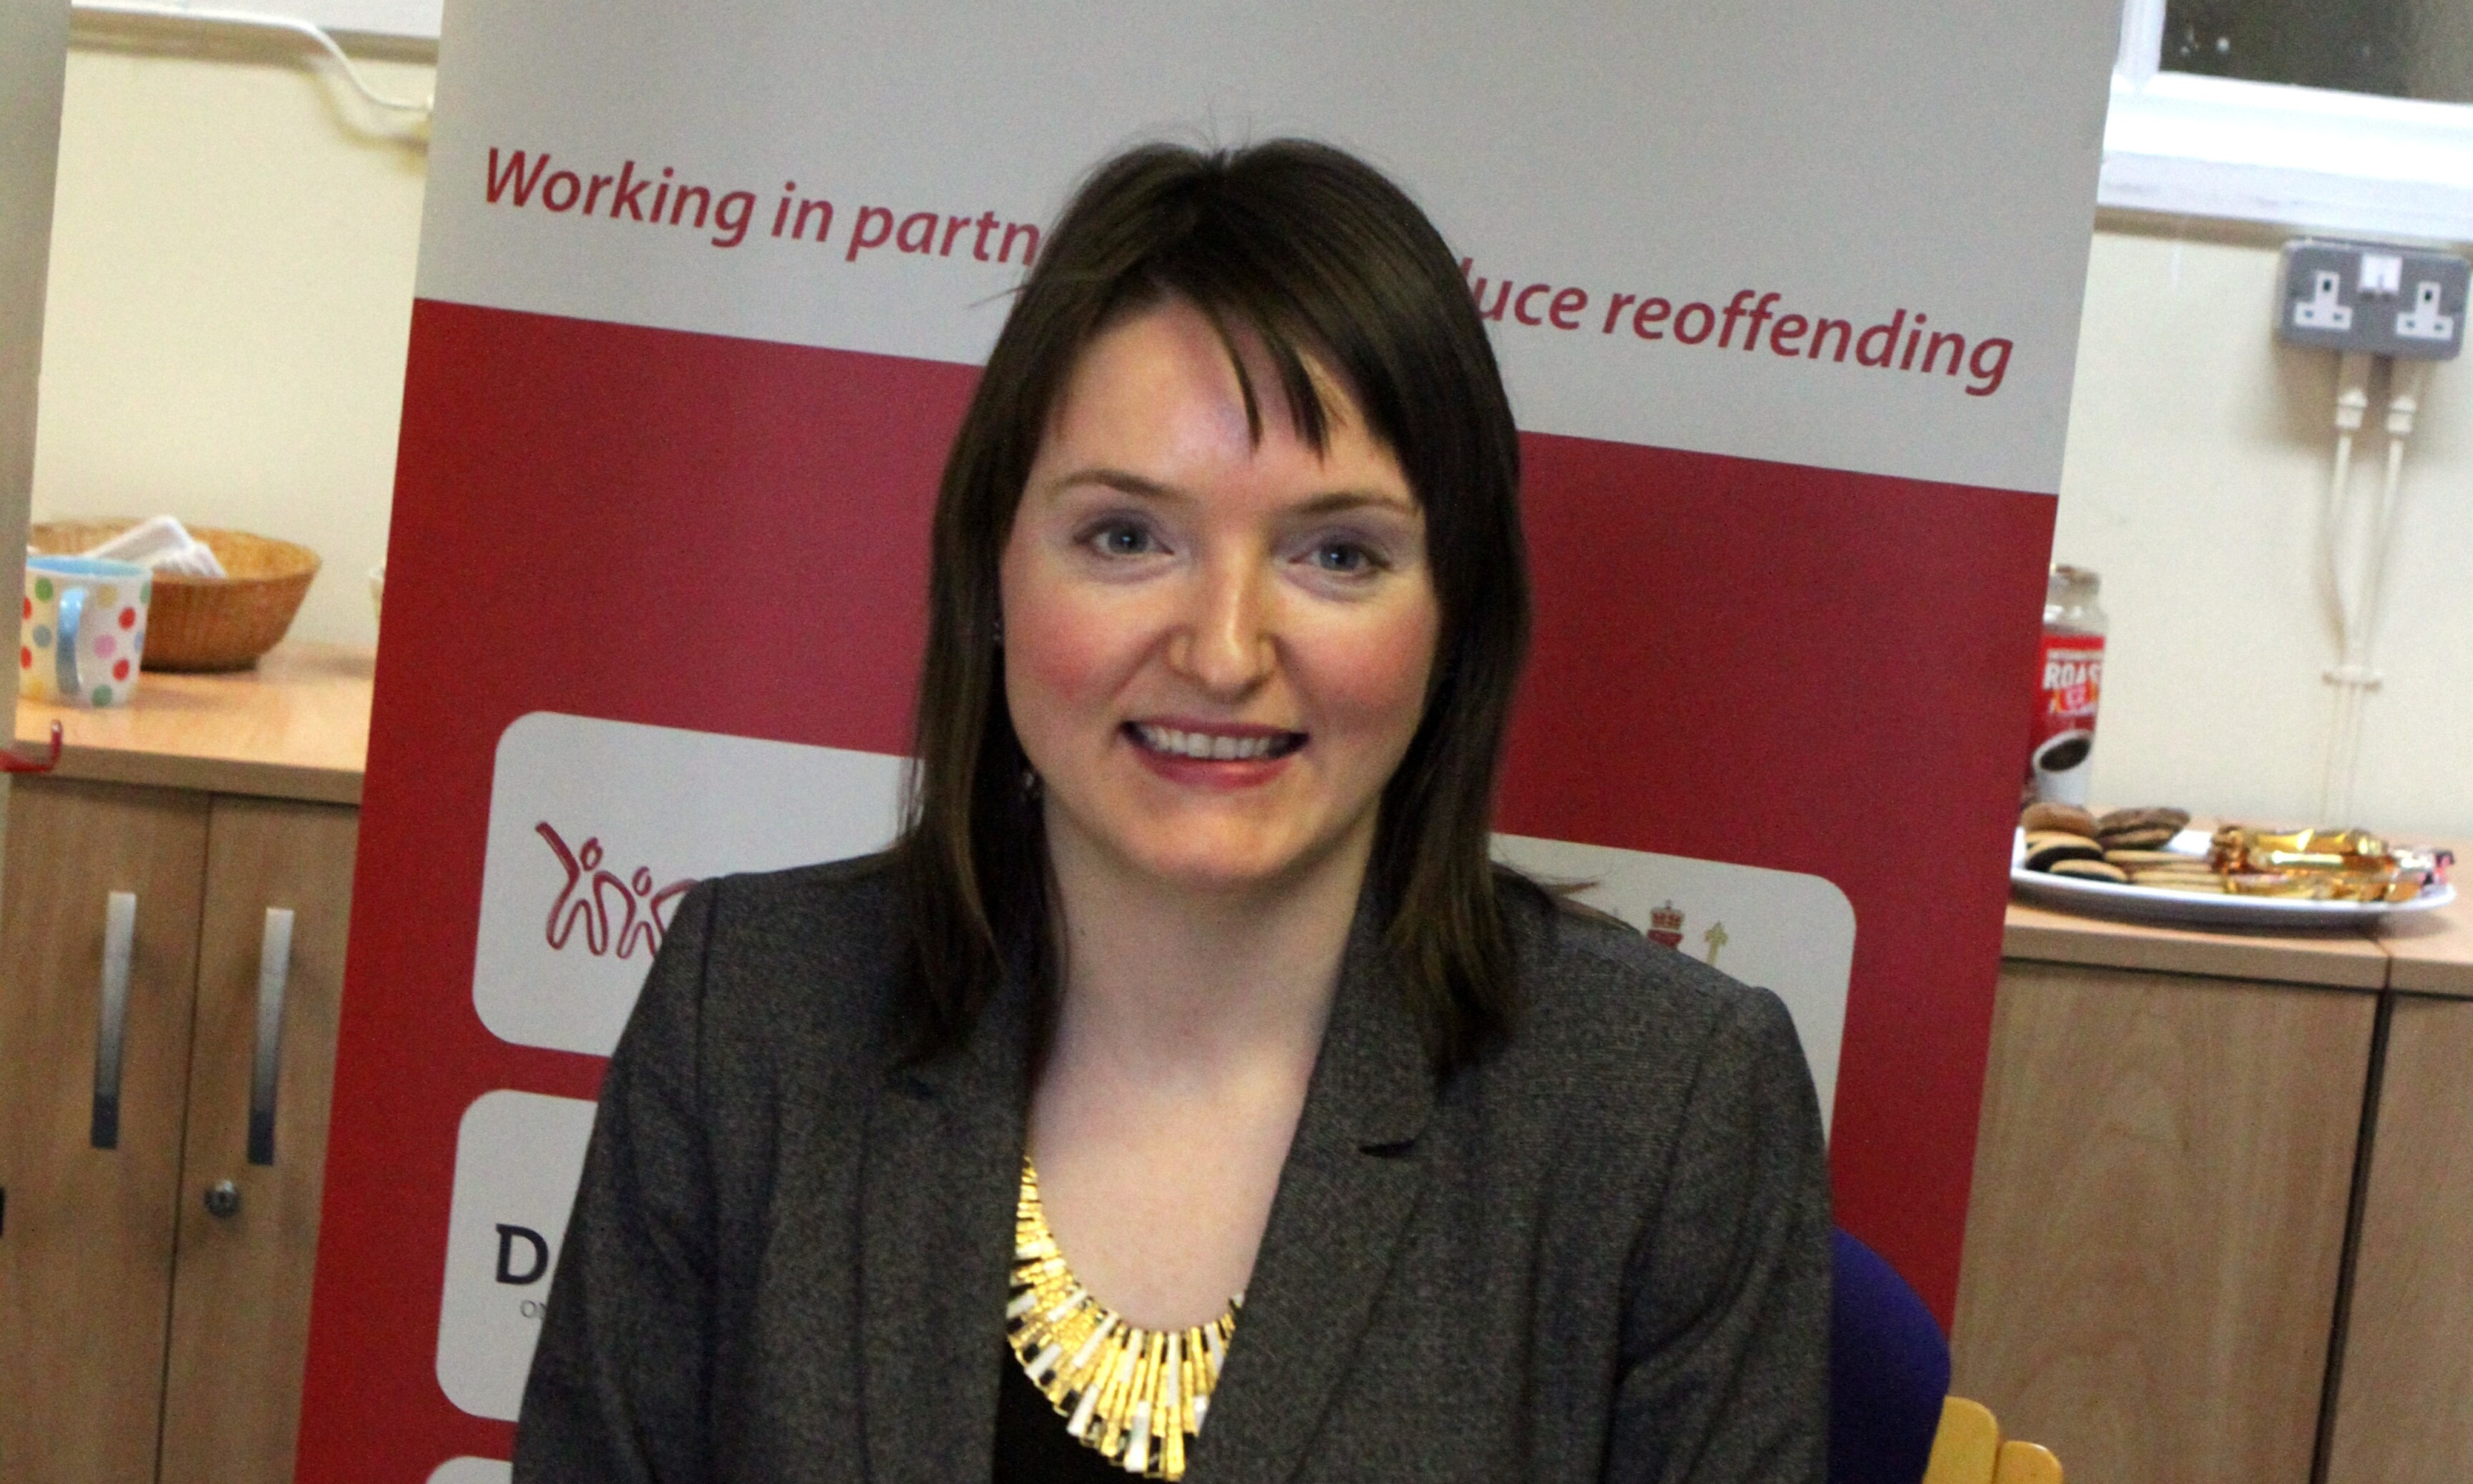 Karen Moir of the Tayside Community Justice Authority